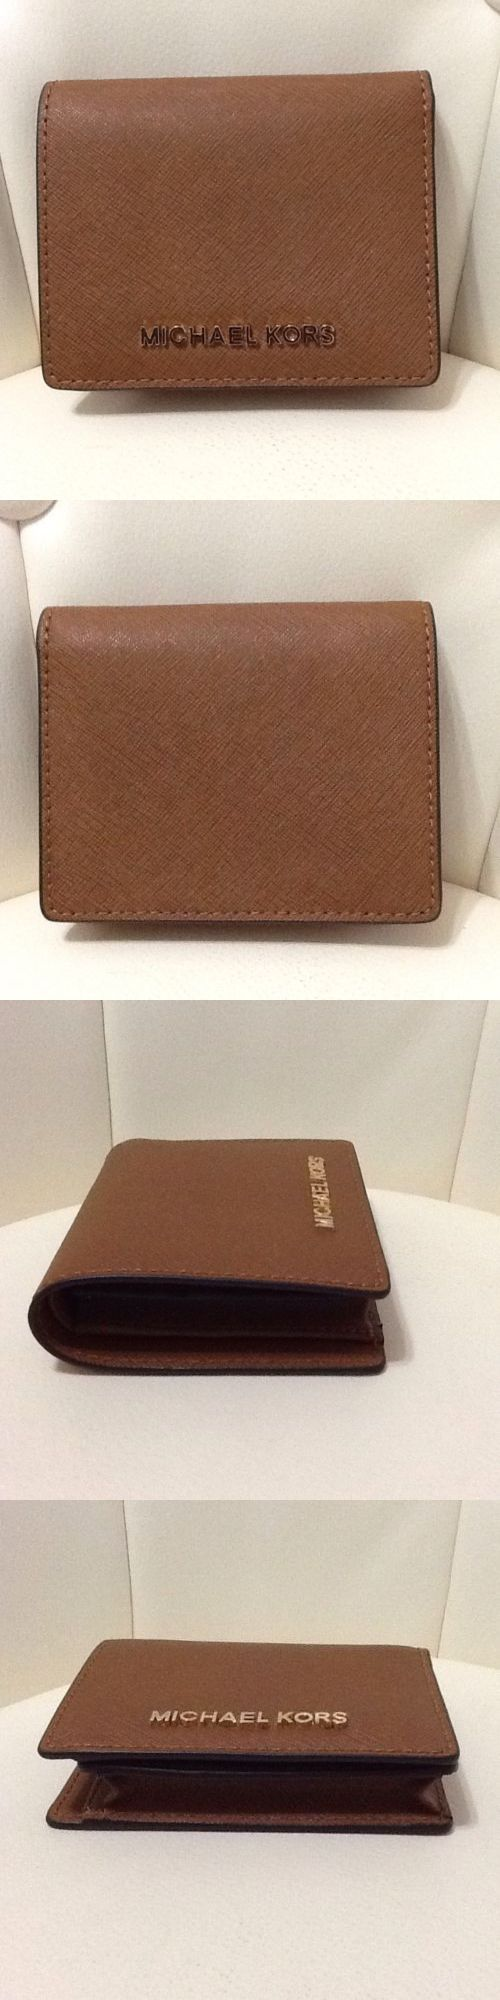 Women Accessories: Michael Kors Jet Set Flap Card Holder Wallet Luggage Leather Womens Nwt BUY IT NOW ONLY: $59.97